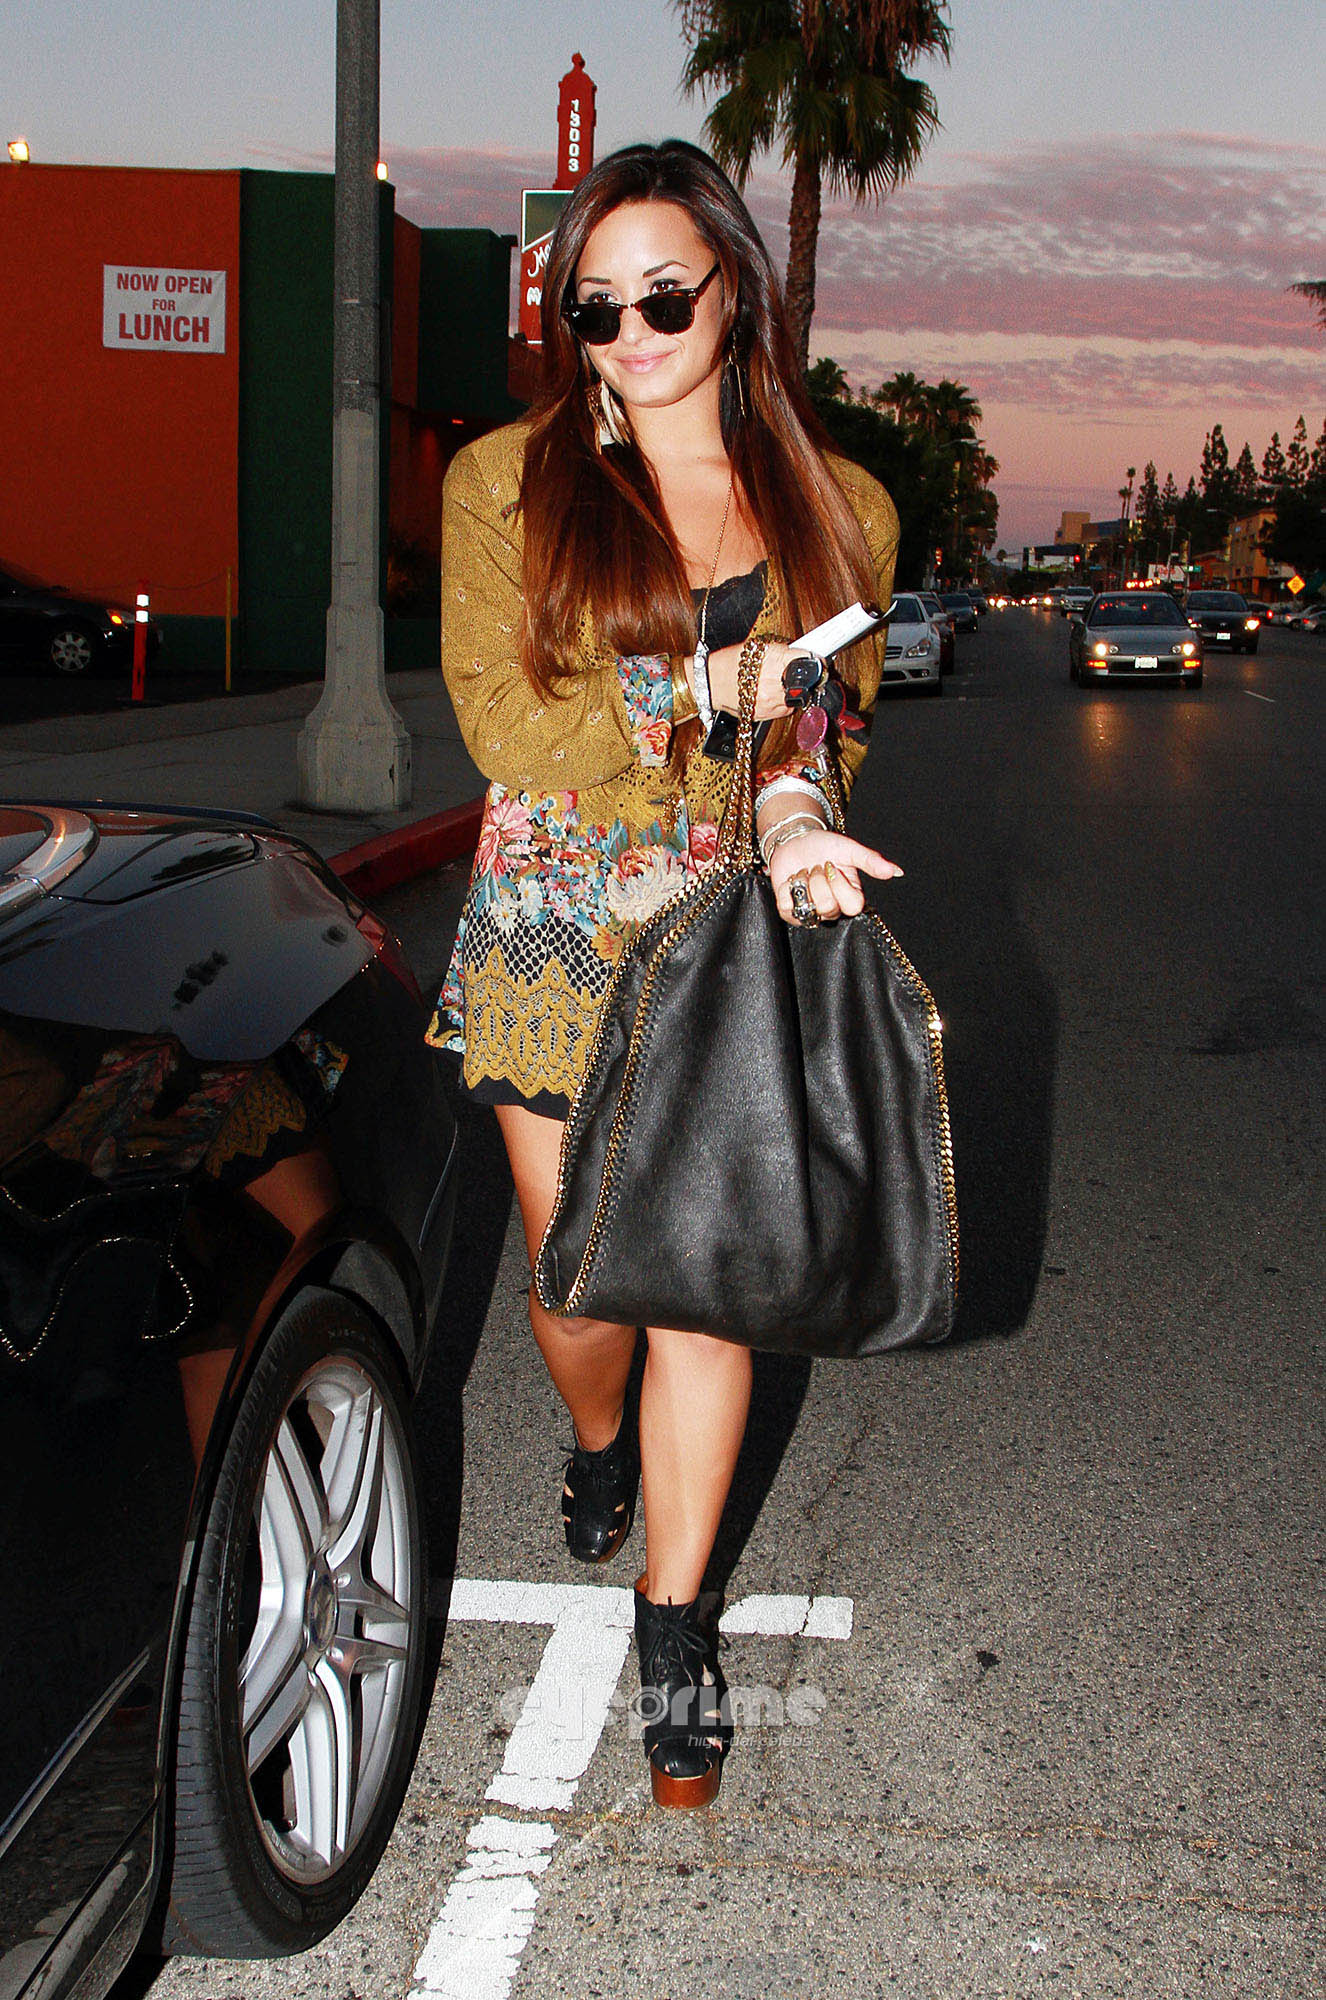 Demi Lovato out in Los Angeles, August 2 - demi-lovato photo